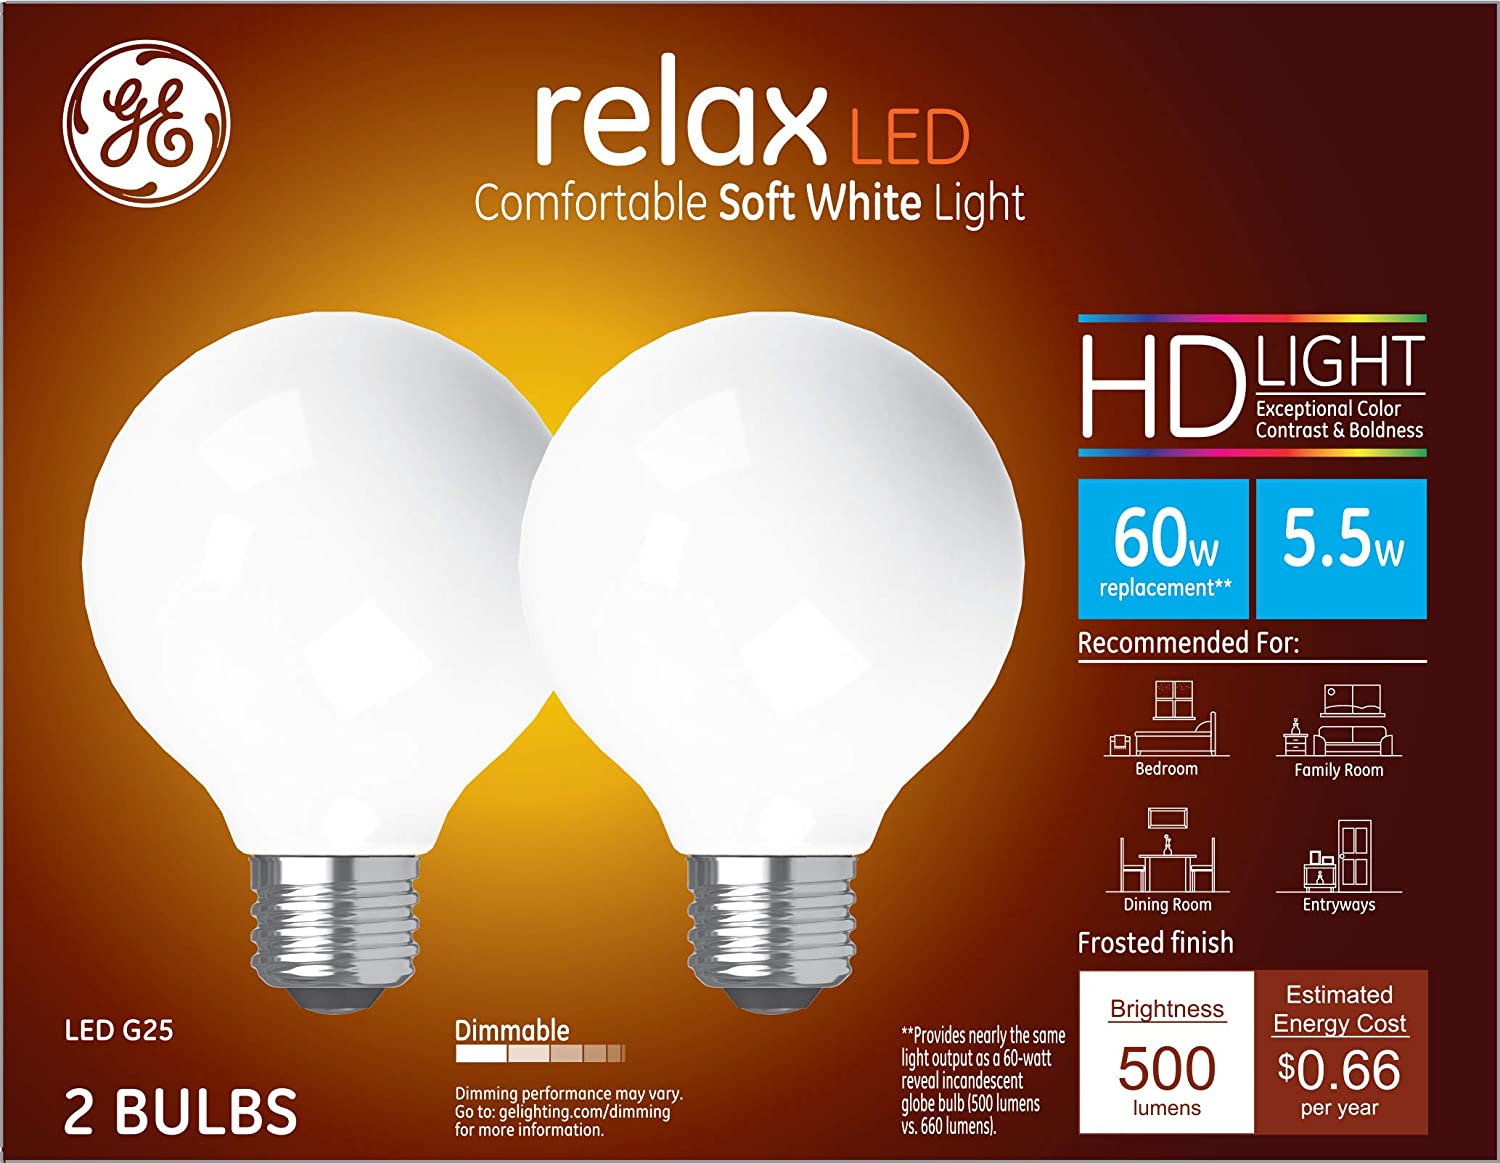 GE Lighting 31696 Frosted Finish Light Bulb Relax HD Dimmable LED G25 Decorative Globe 5.5 (60-Watt Replacement), 500-Lumen Medium Base, 2-Pack, White, 2